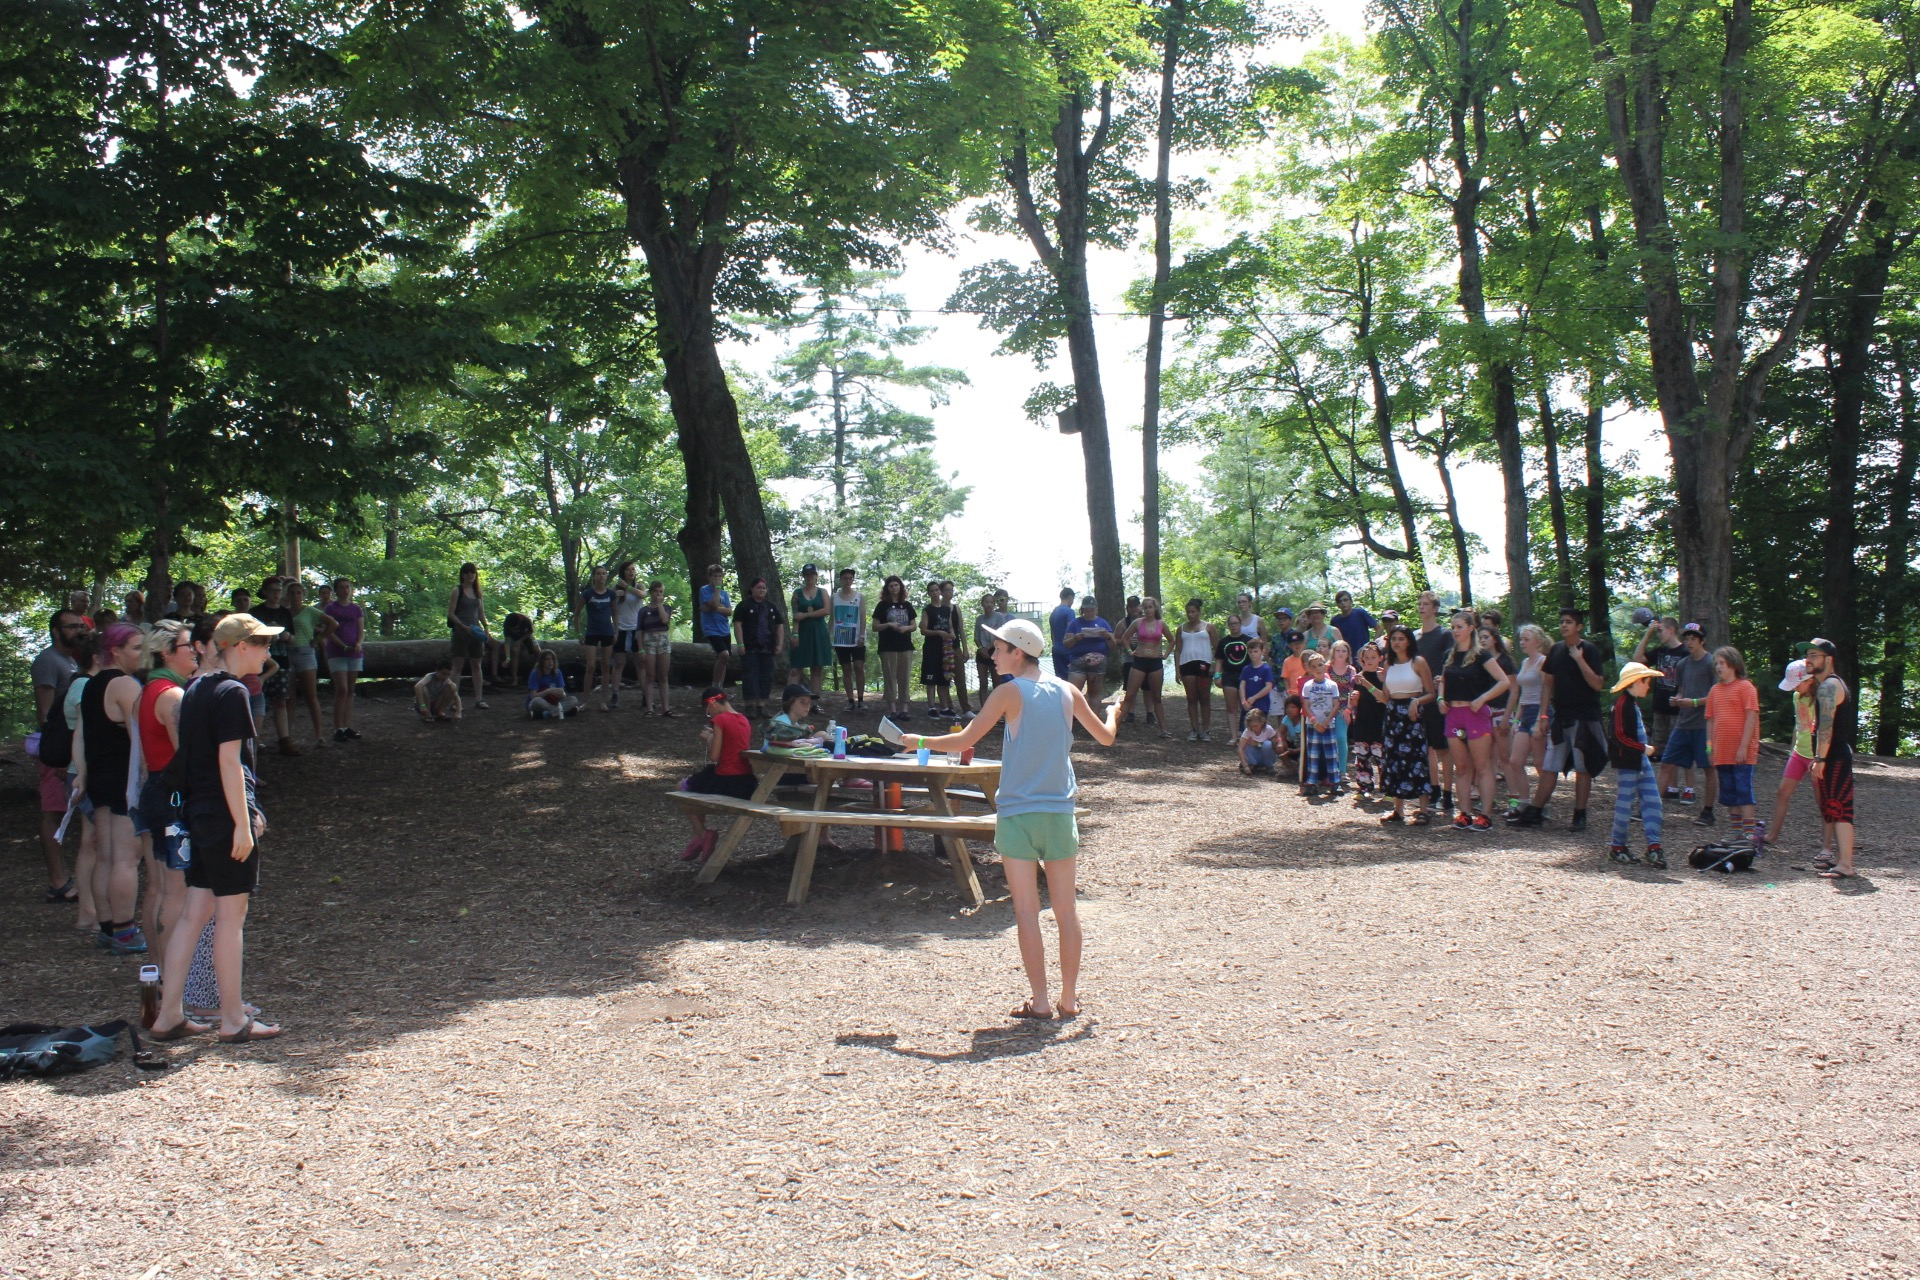 LGBTQ+ Kids Blossoming and Living Their Truths at Camp (HuffPost)